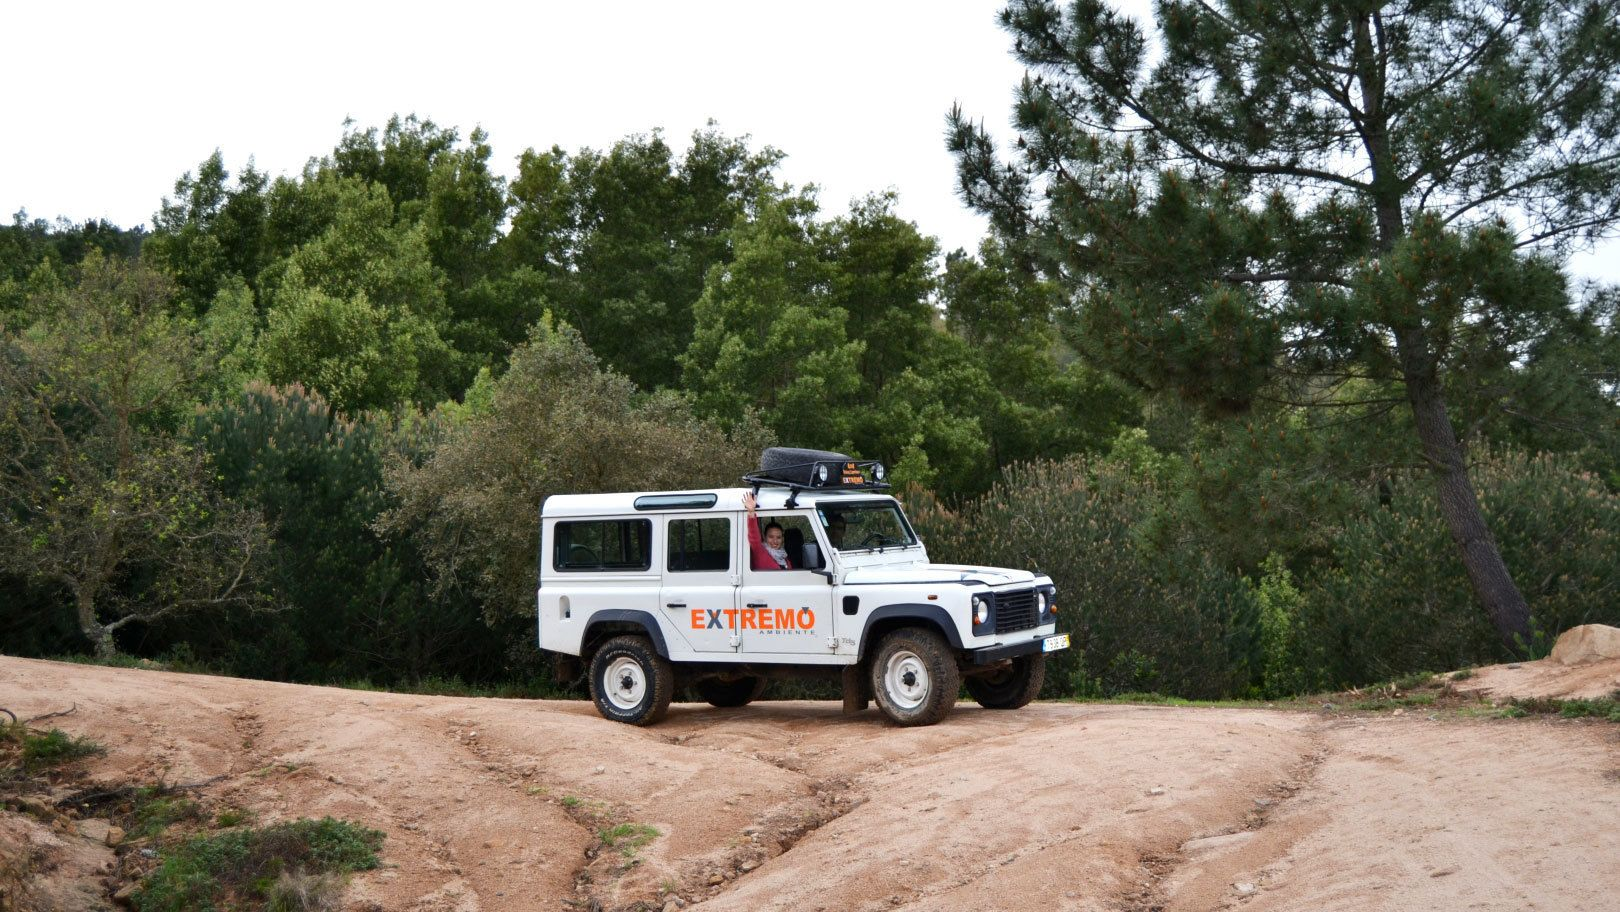 Extremo tour jeep in Sintra